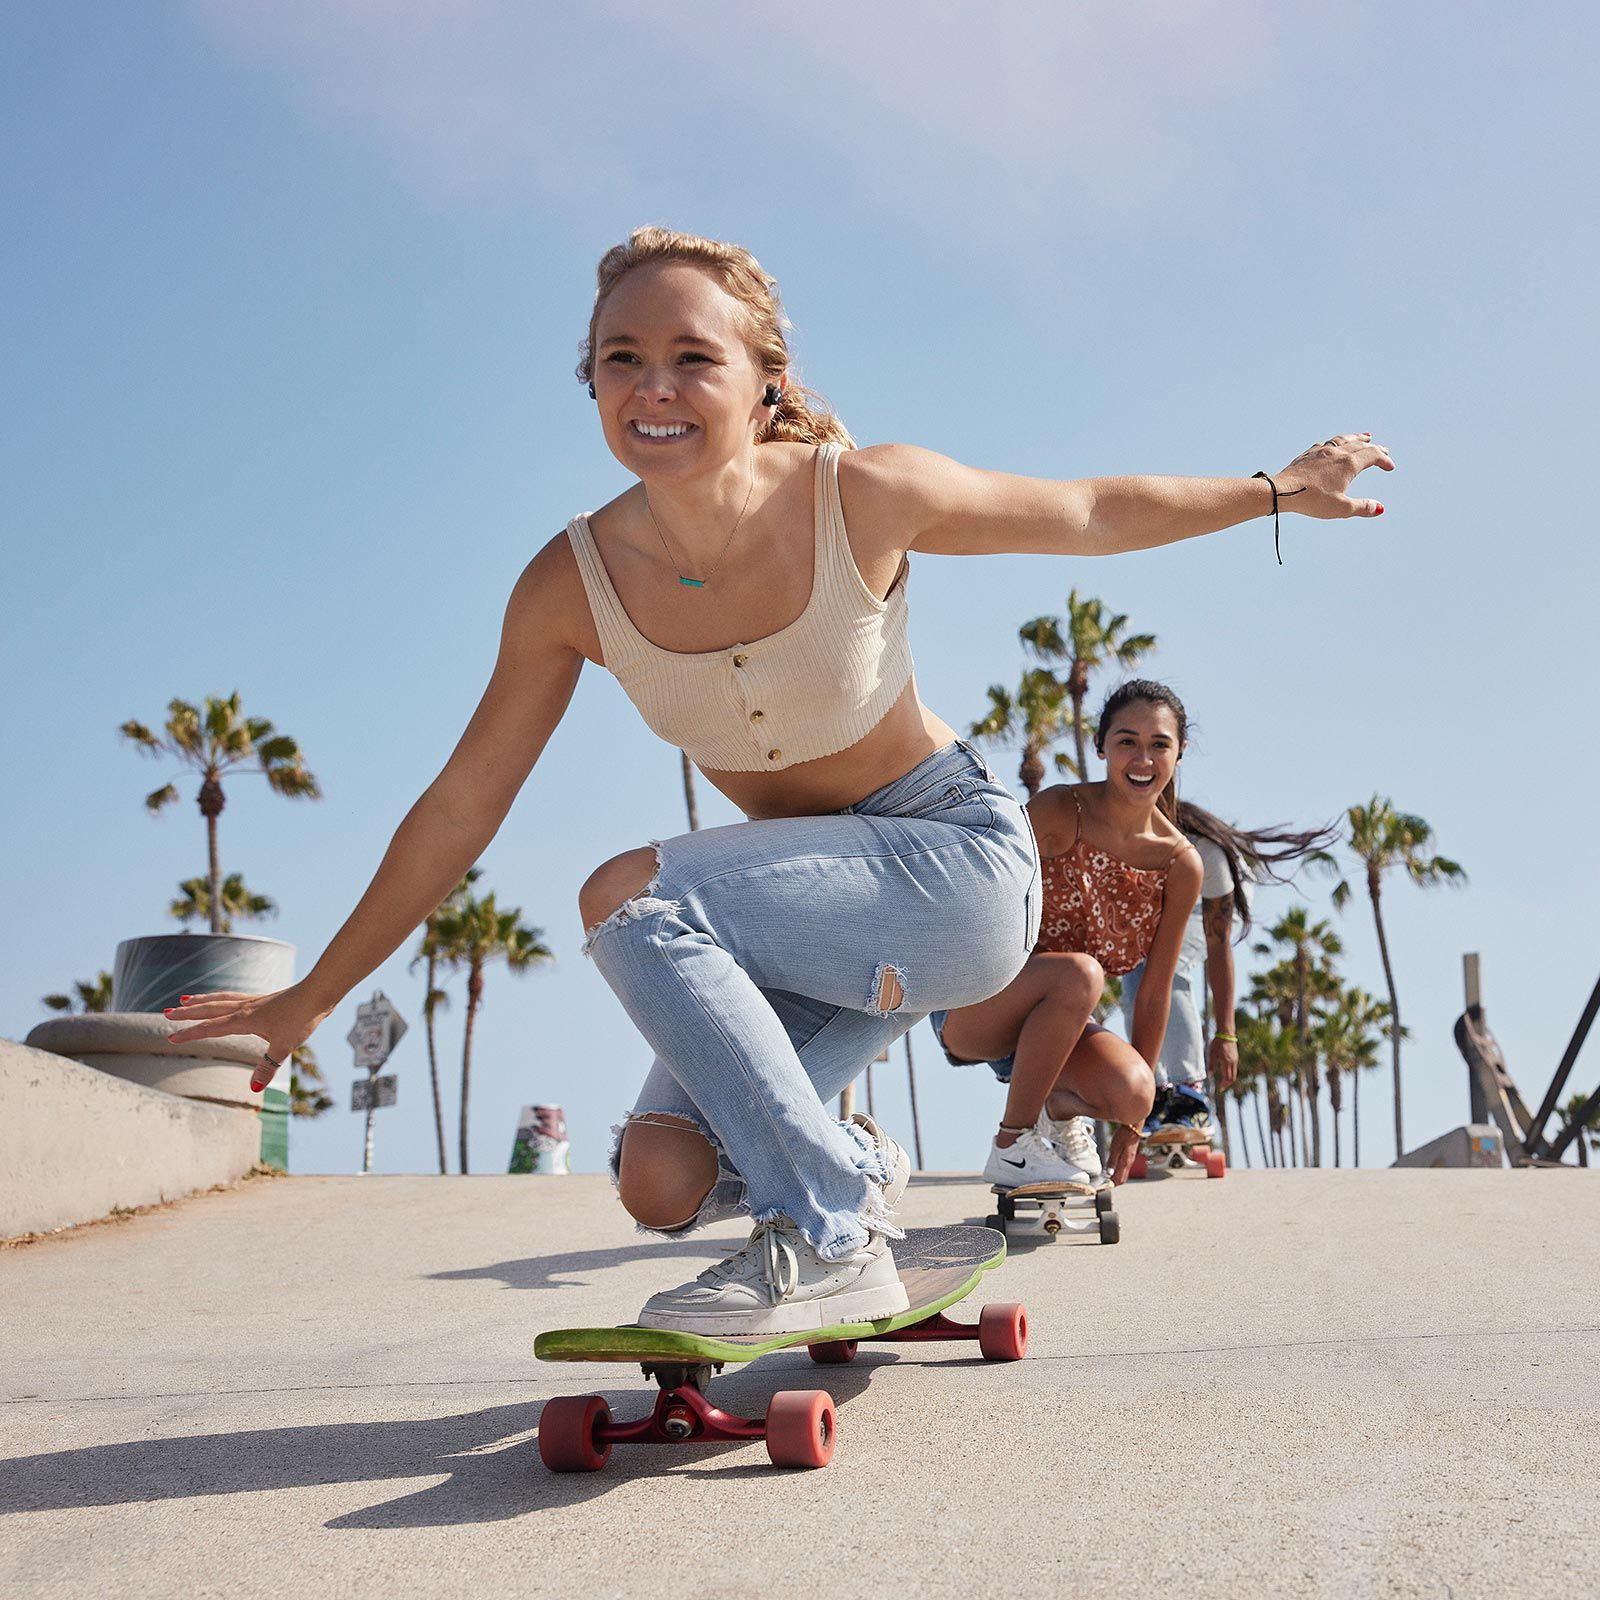 Longboard skater with NURABUDS earbuds in ears skating with friends